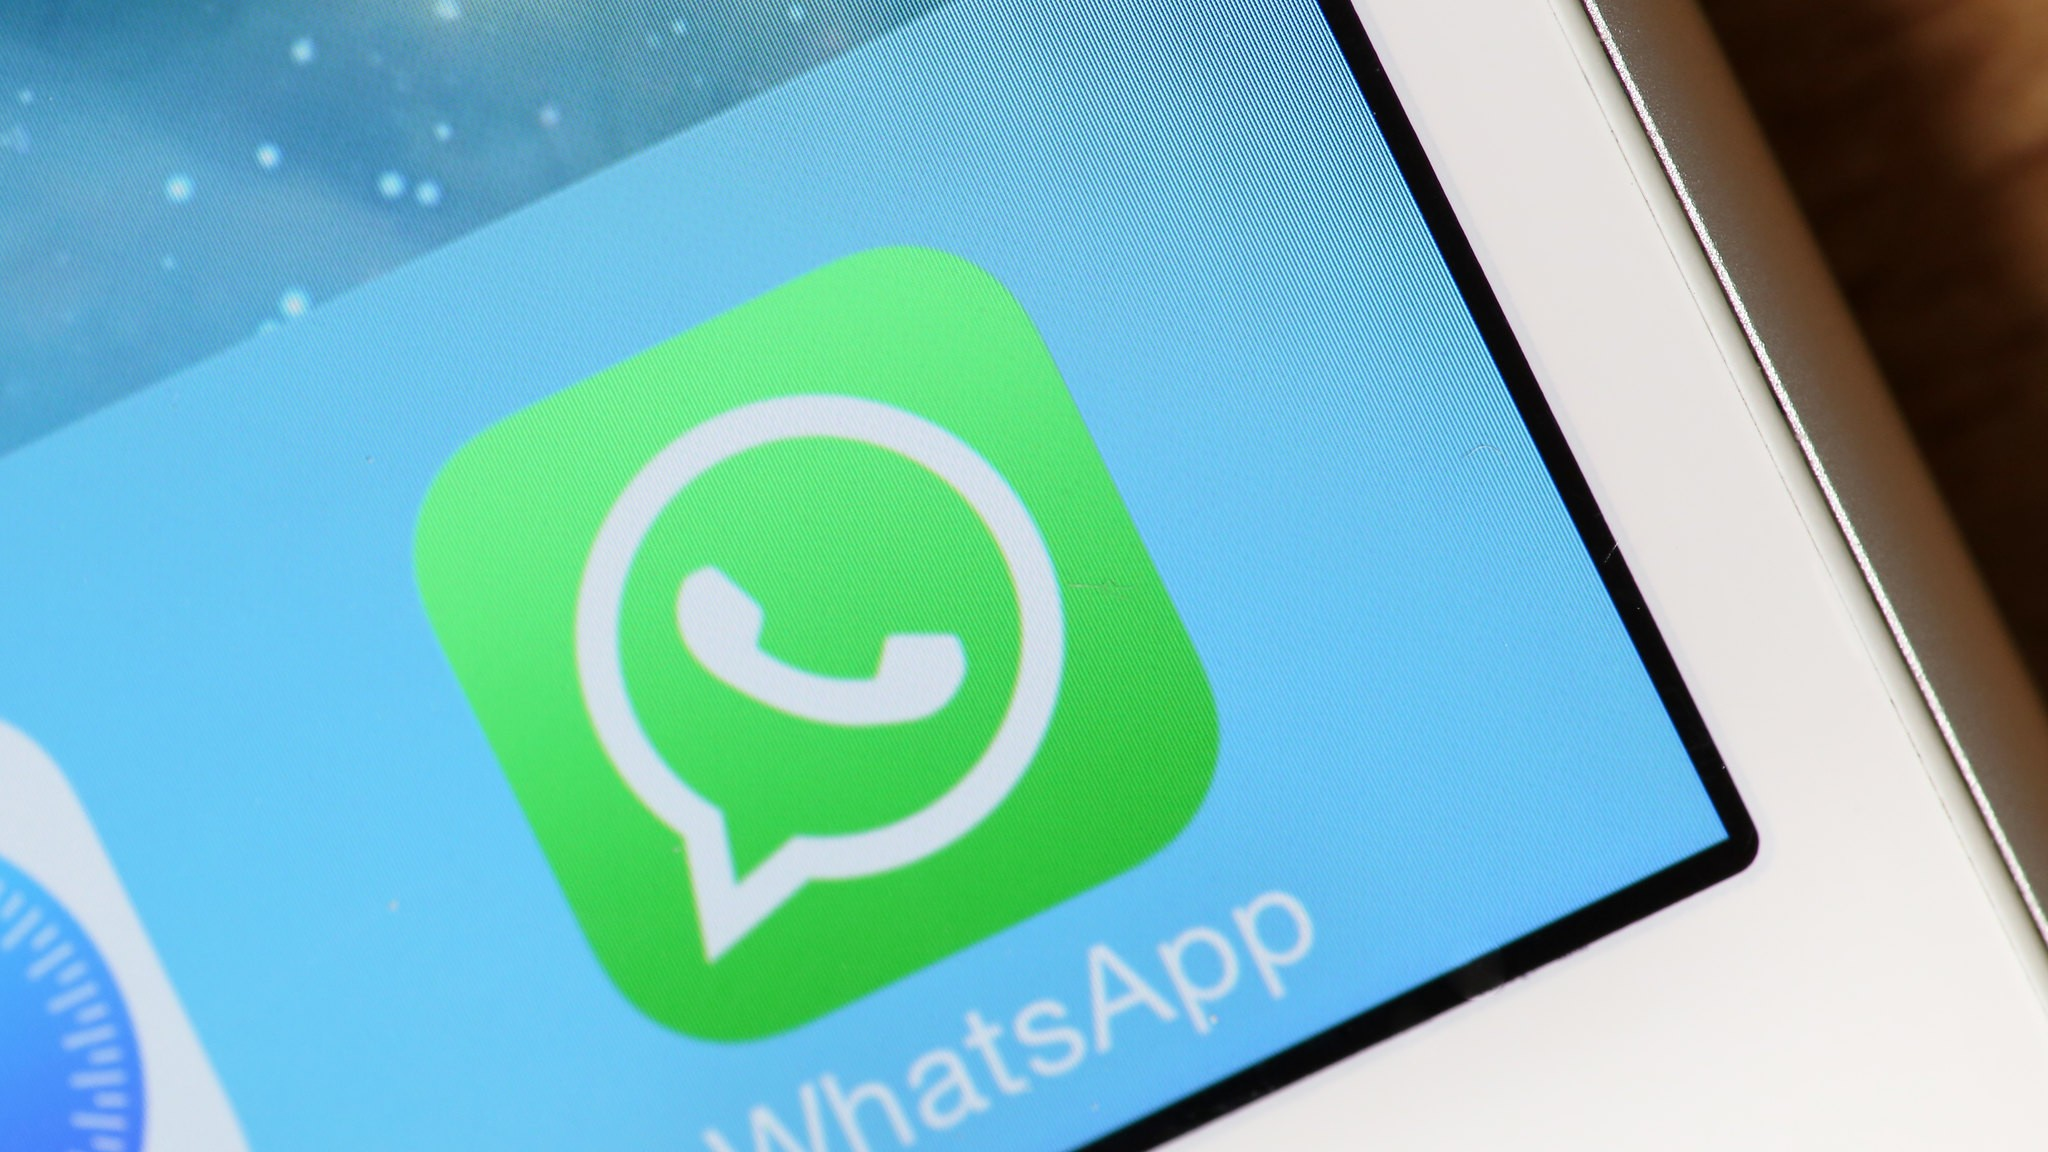 WhatsApp is suing the world's top hacking company